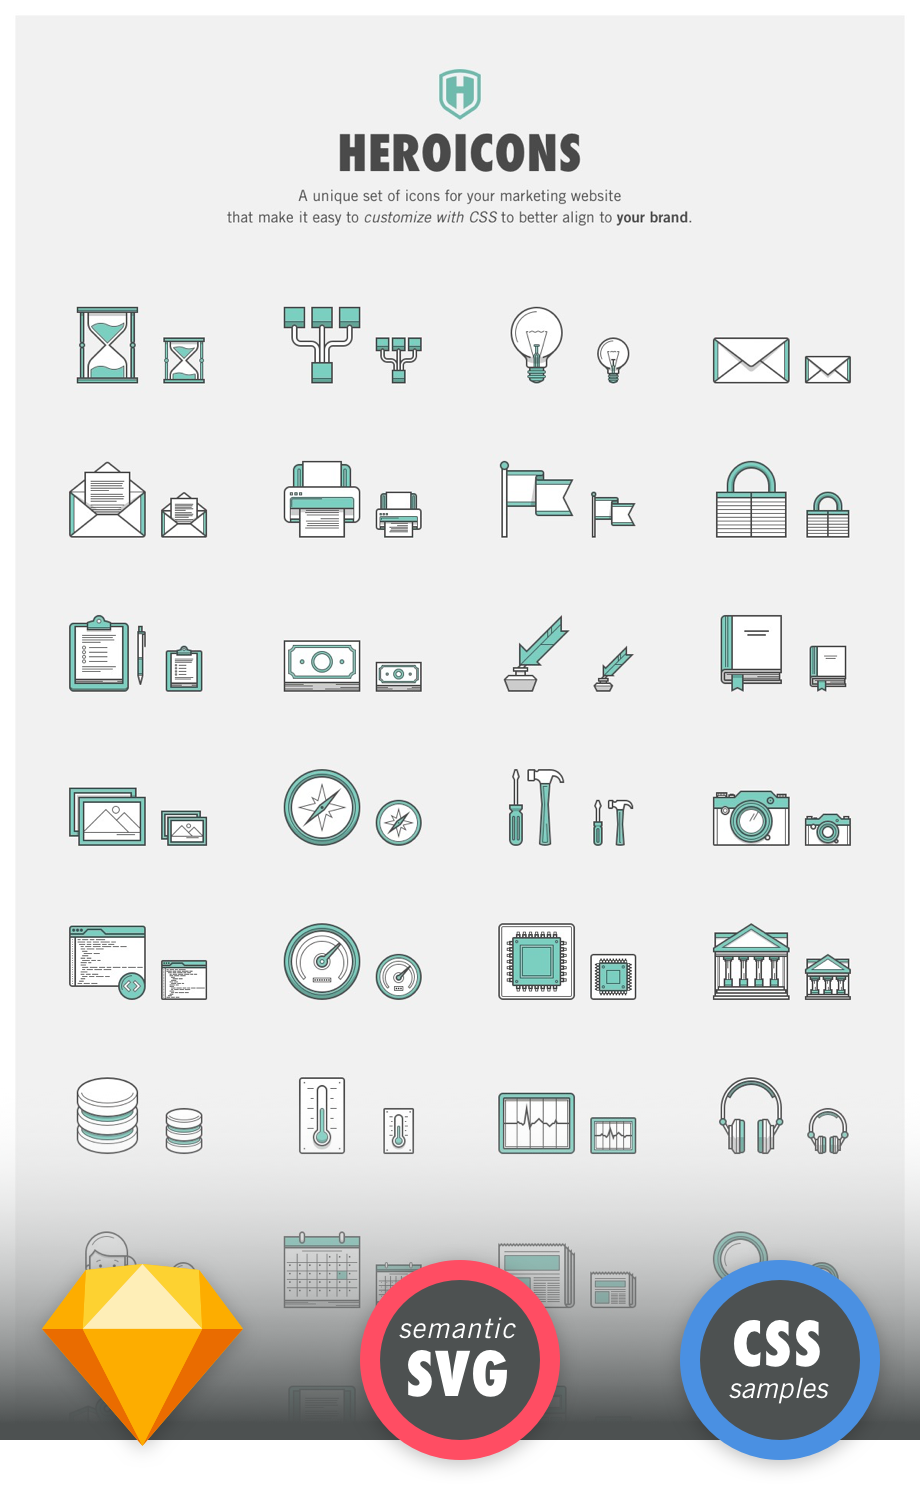 A set of premium customizable SVG icons for your marketing